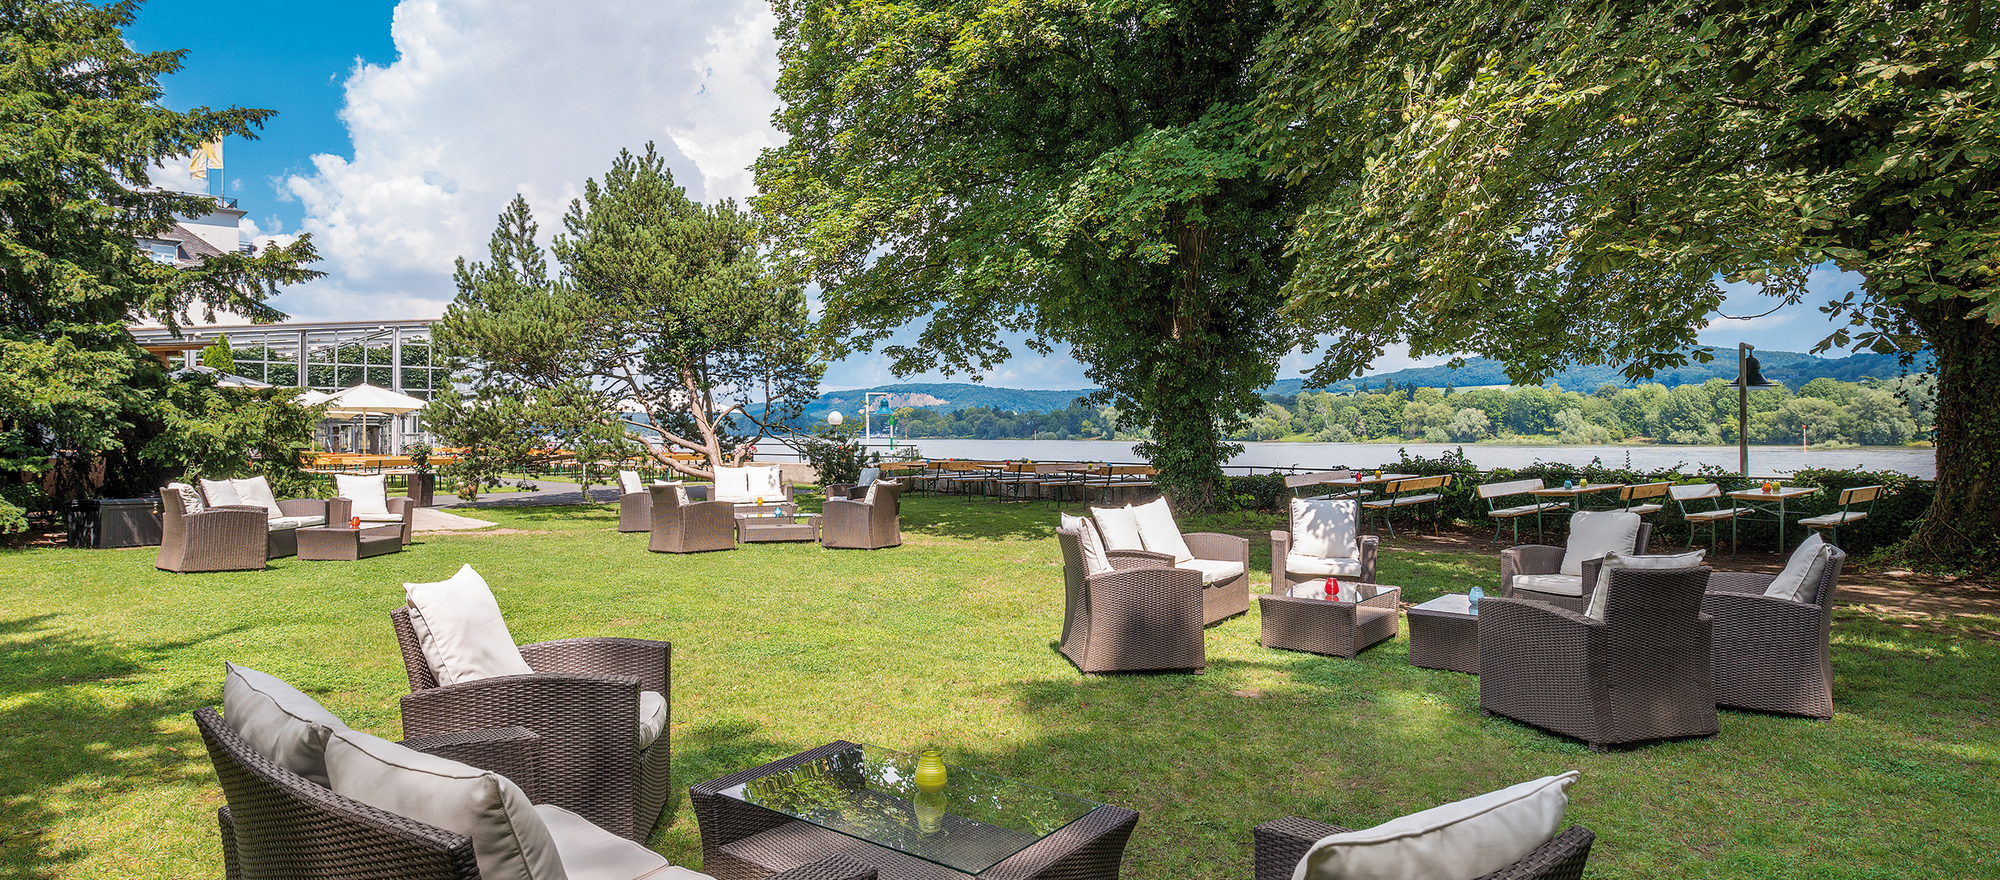 Beer garden in the park, Ringhotel Rheinhotel Dreesen in Bonn-Bad Godesberg